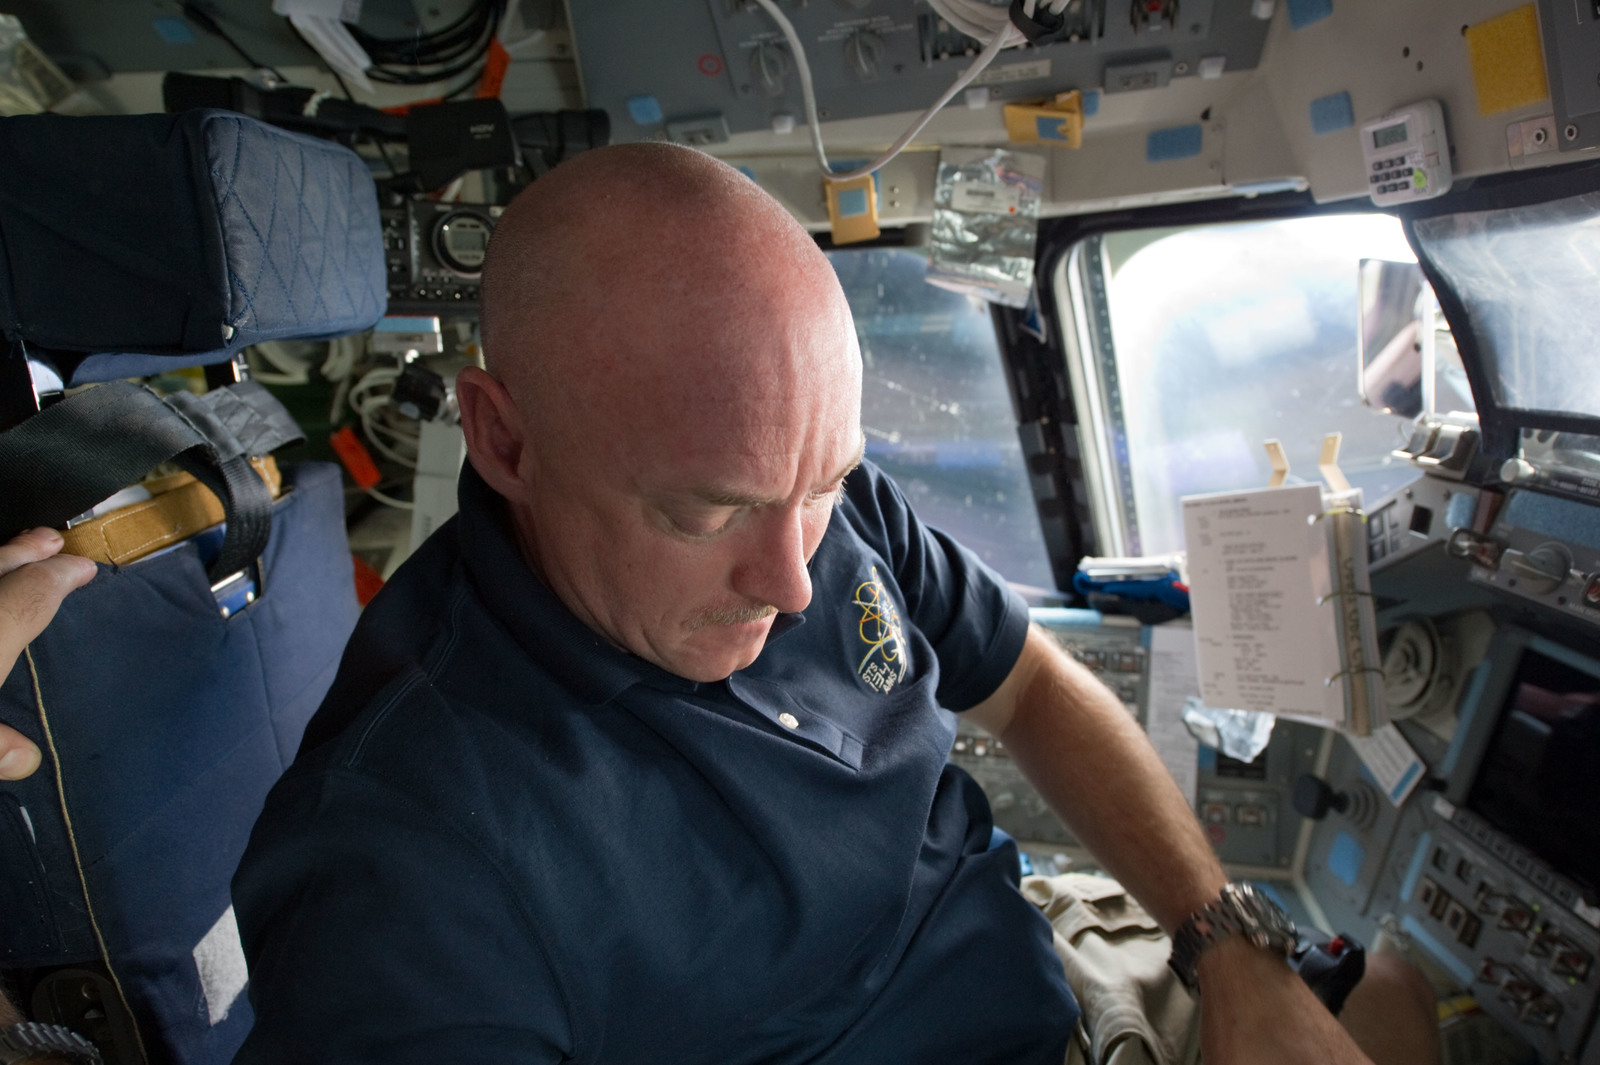 S134E006538 - STS-134 - STS-134 Commander Kelly working on the Flight Deck